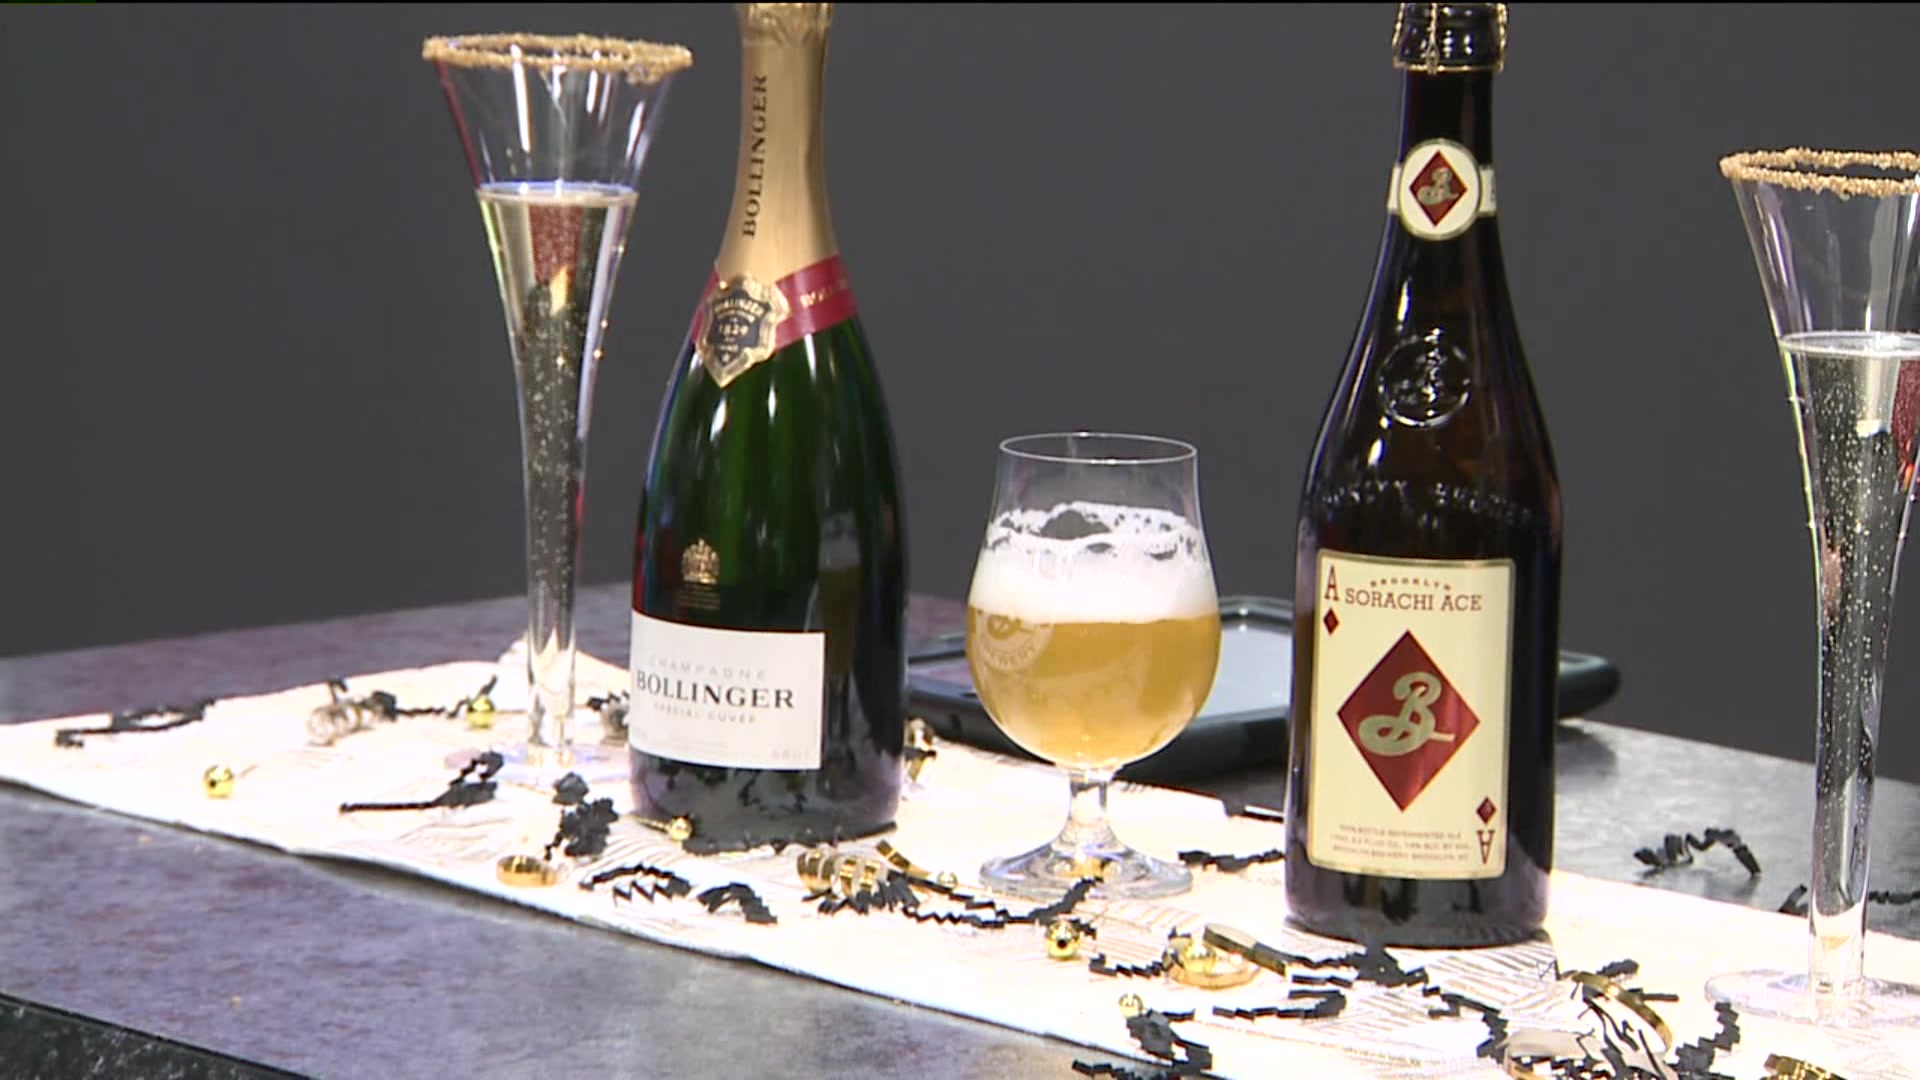 6 Fun Drinks to Help Ring In The New Year